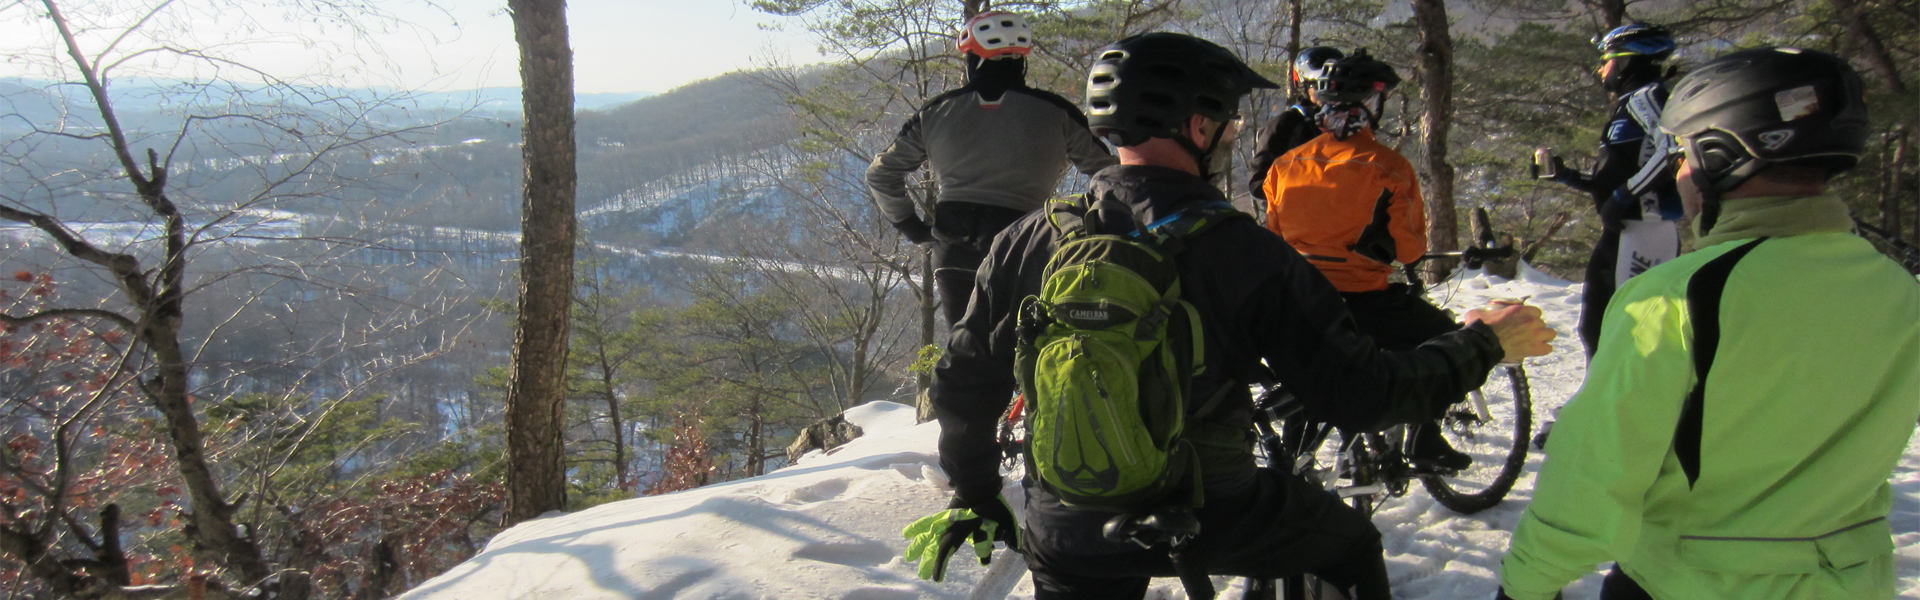 Several mountain bikers take a break from riding in the snow and enjoy the scenic overlook at Neversink Mtn. in Berks County